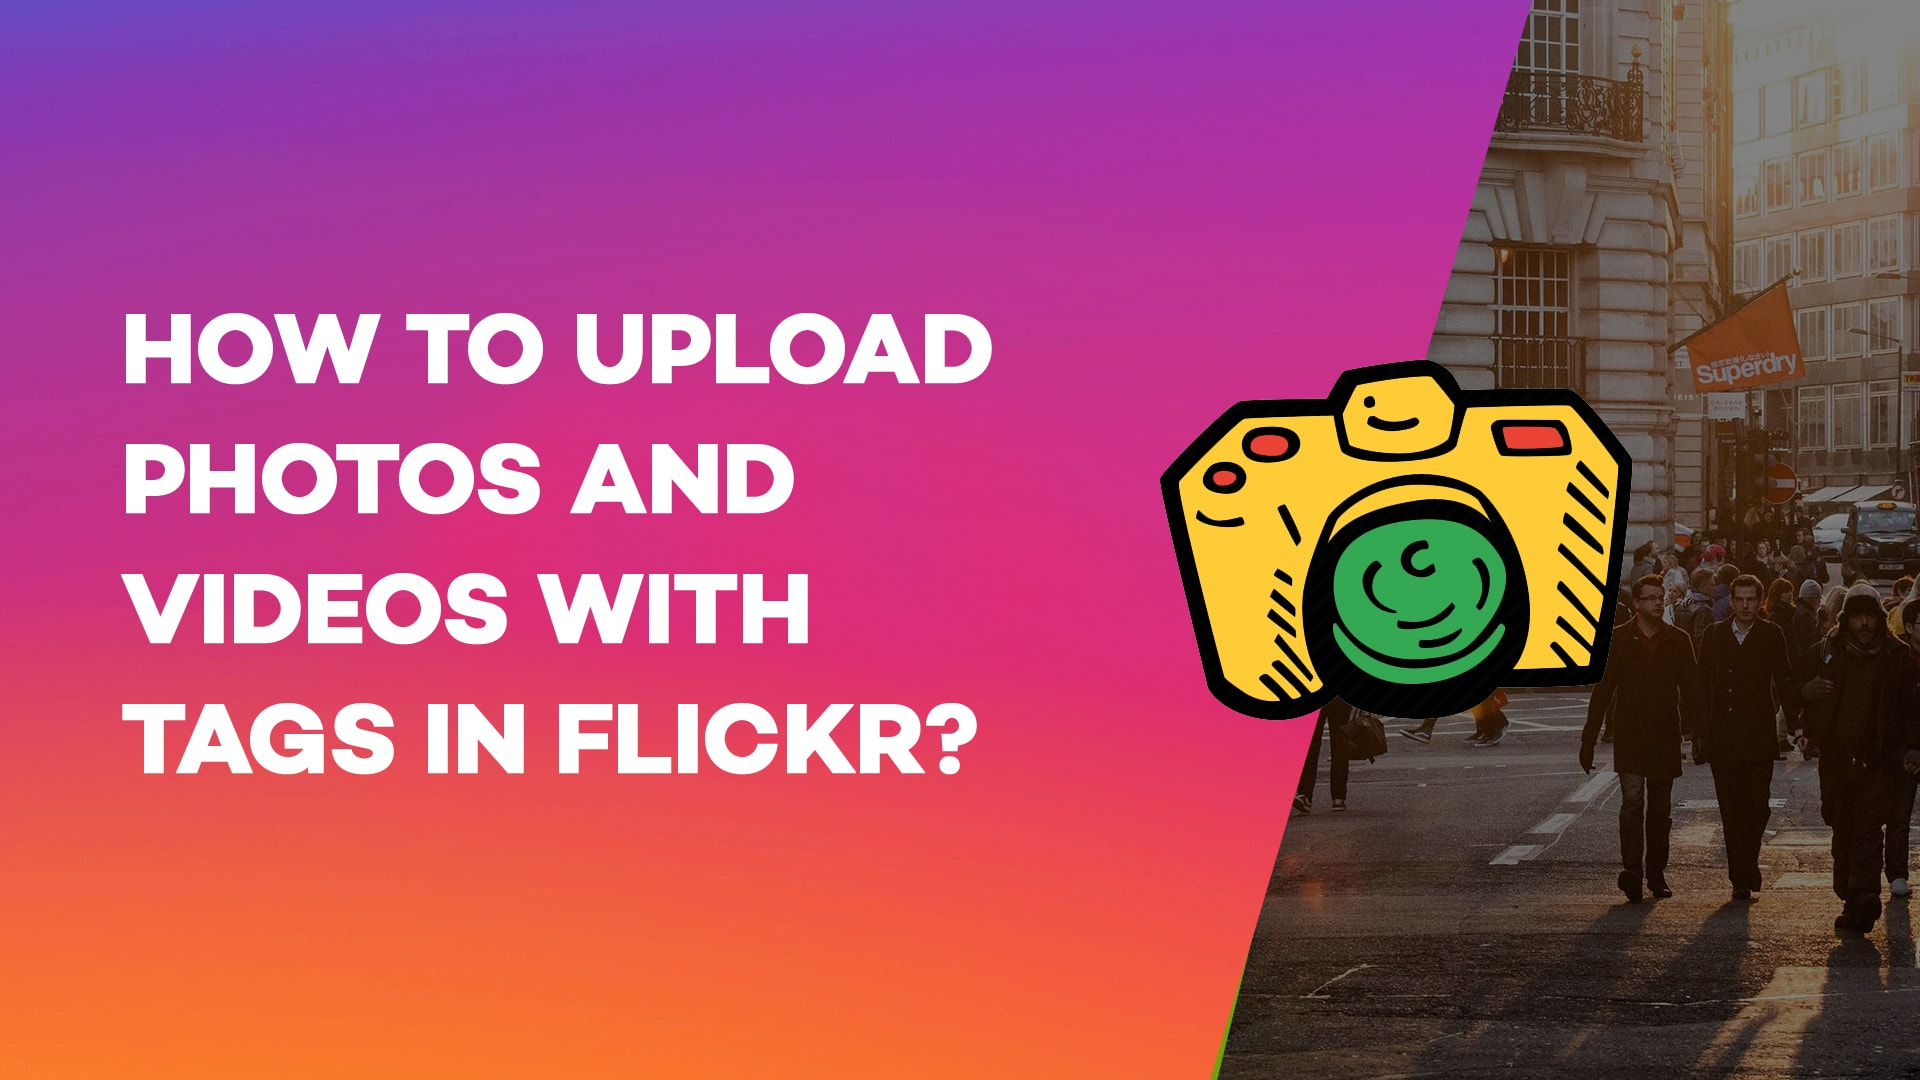 How to upload photos and videos with Tags in Flickr?